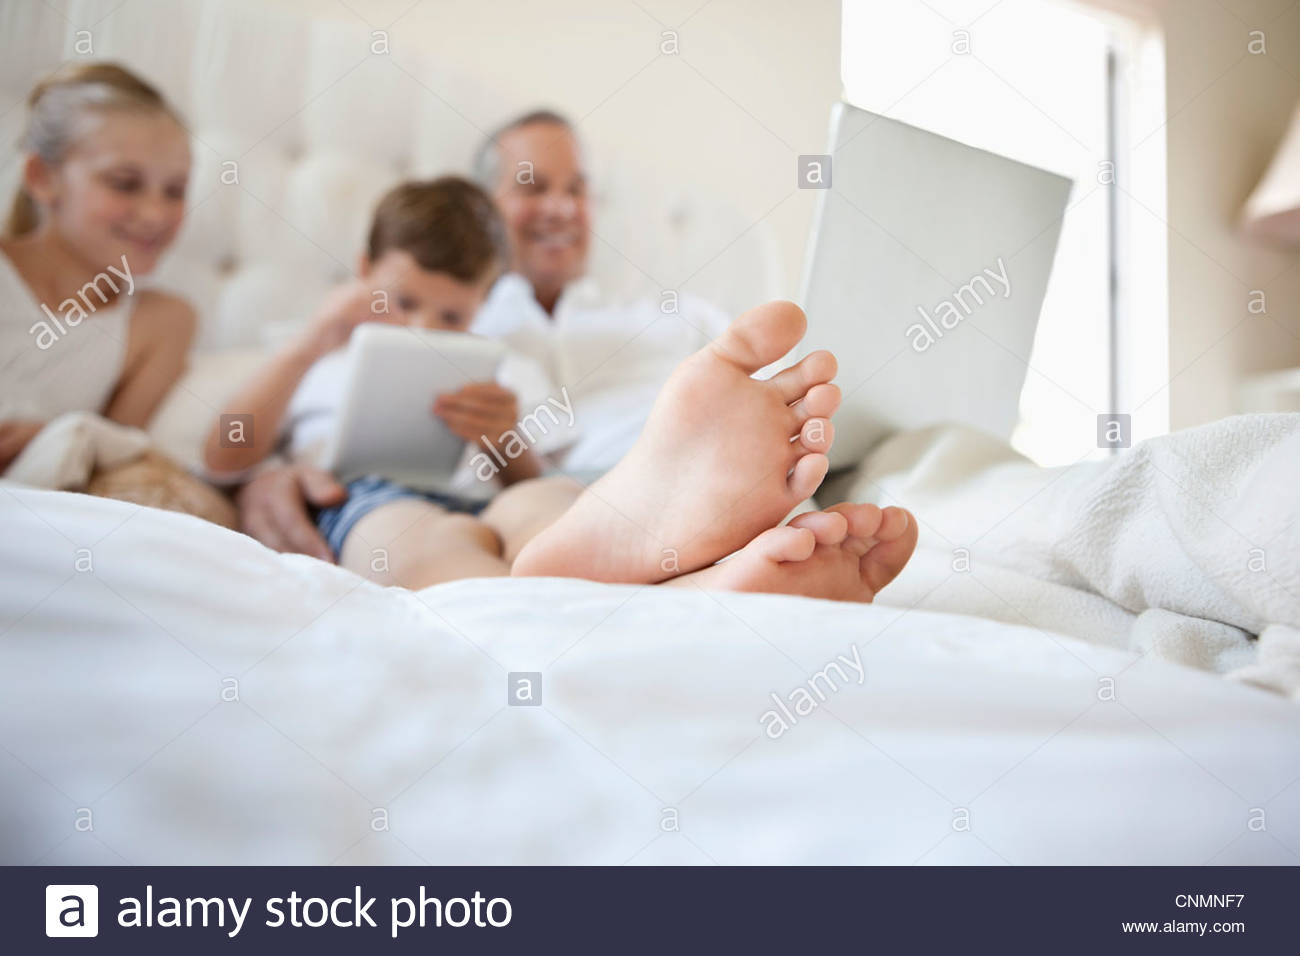 Close Up Of Boys Feet On Bed